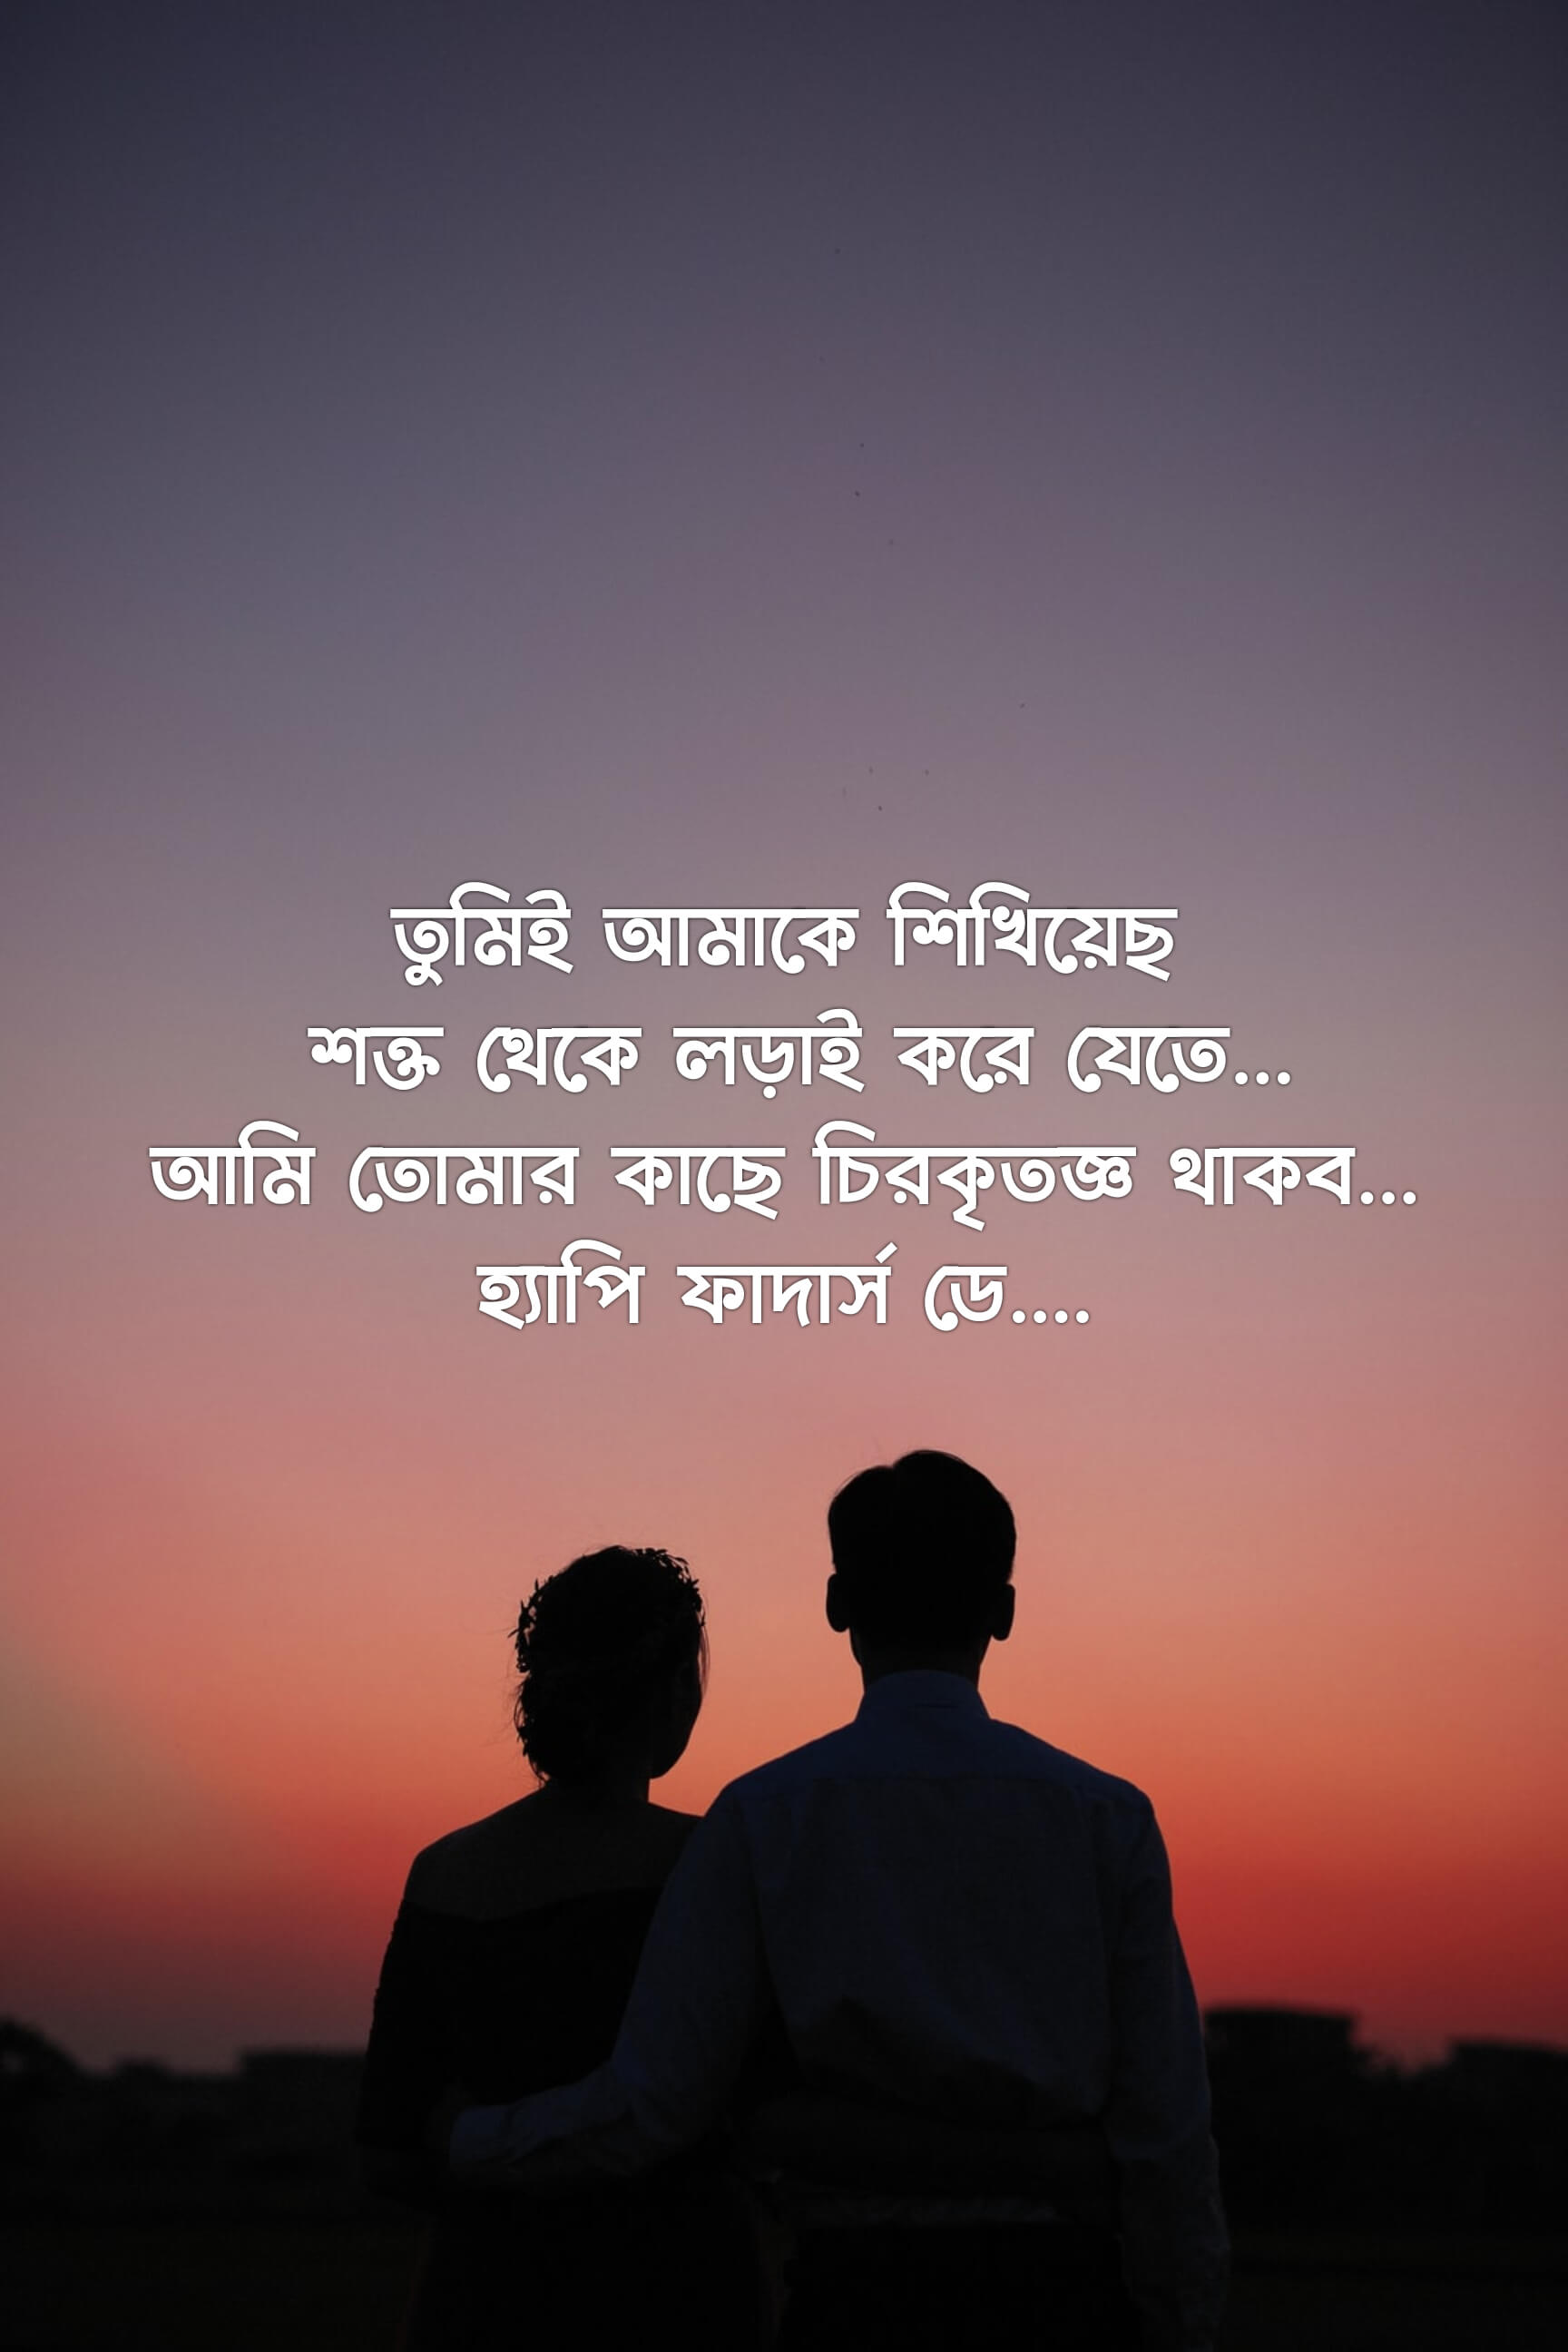 fathers-day-wishes-bengali-bongquotes